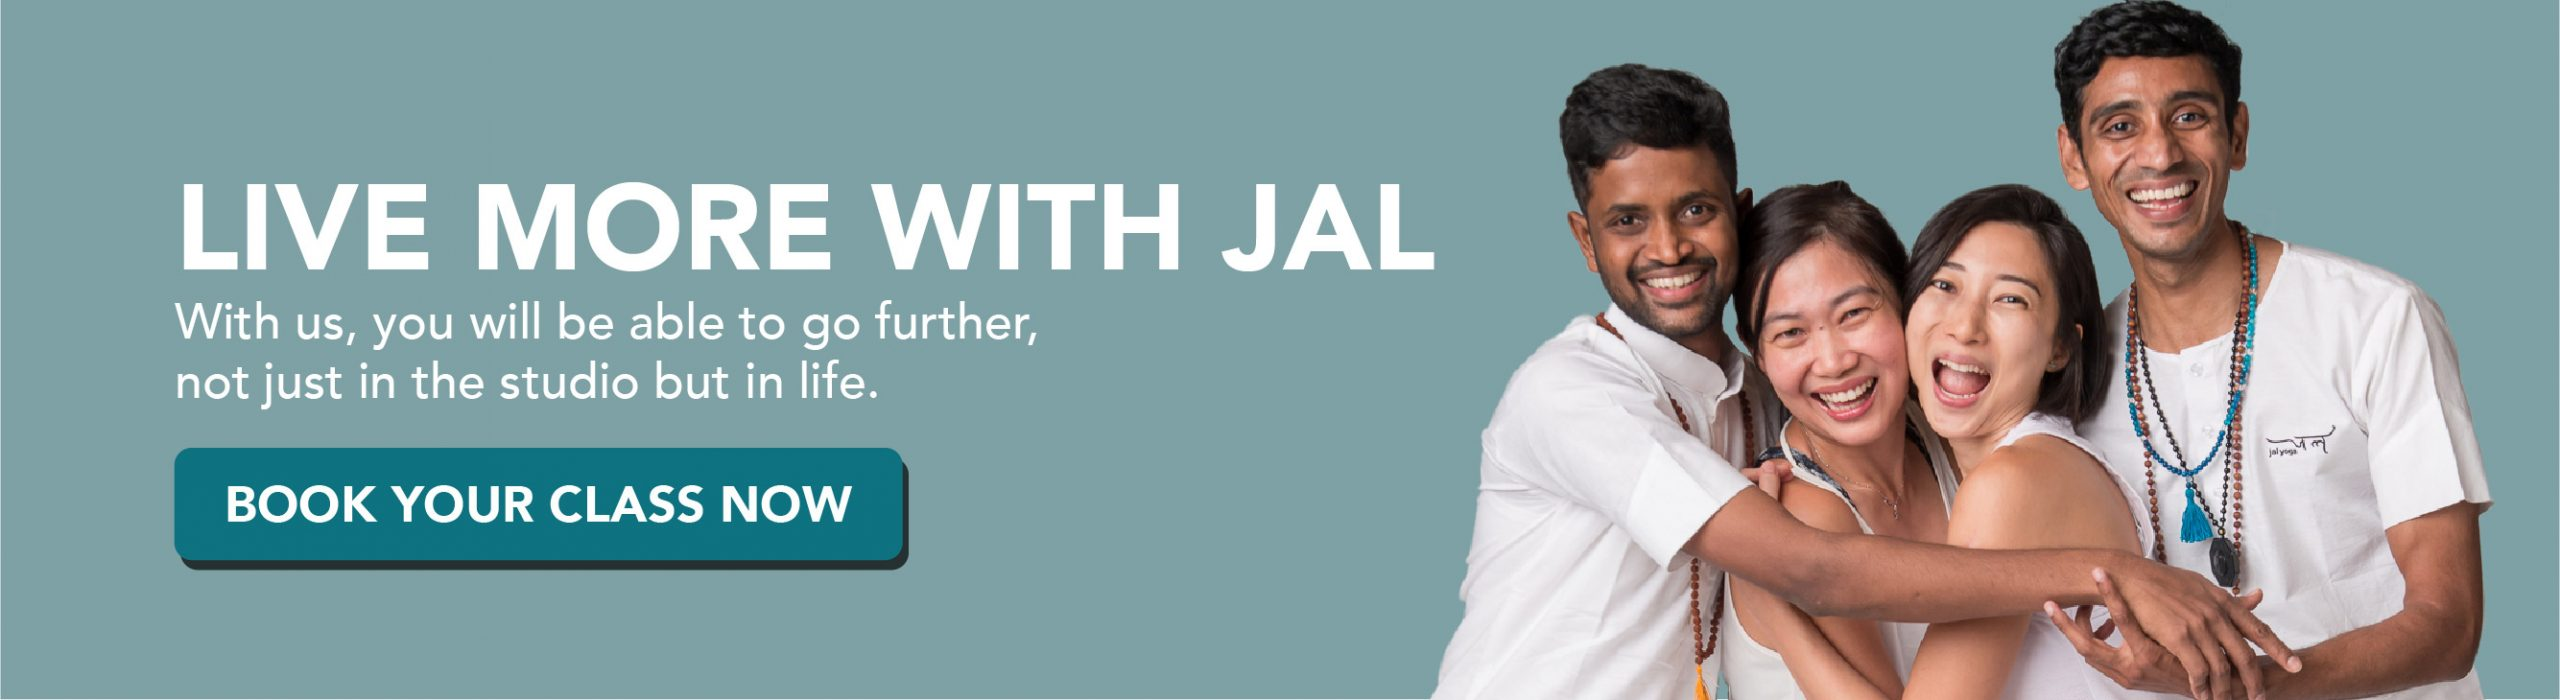 To book your mat at Jal, please register here.